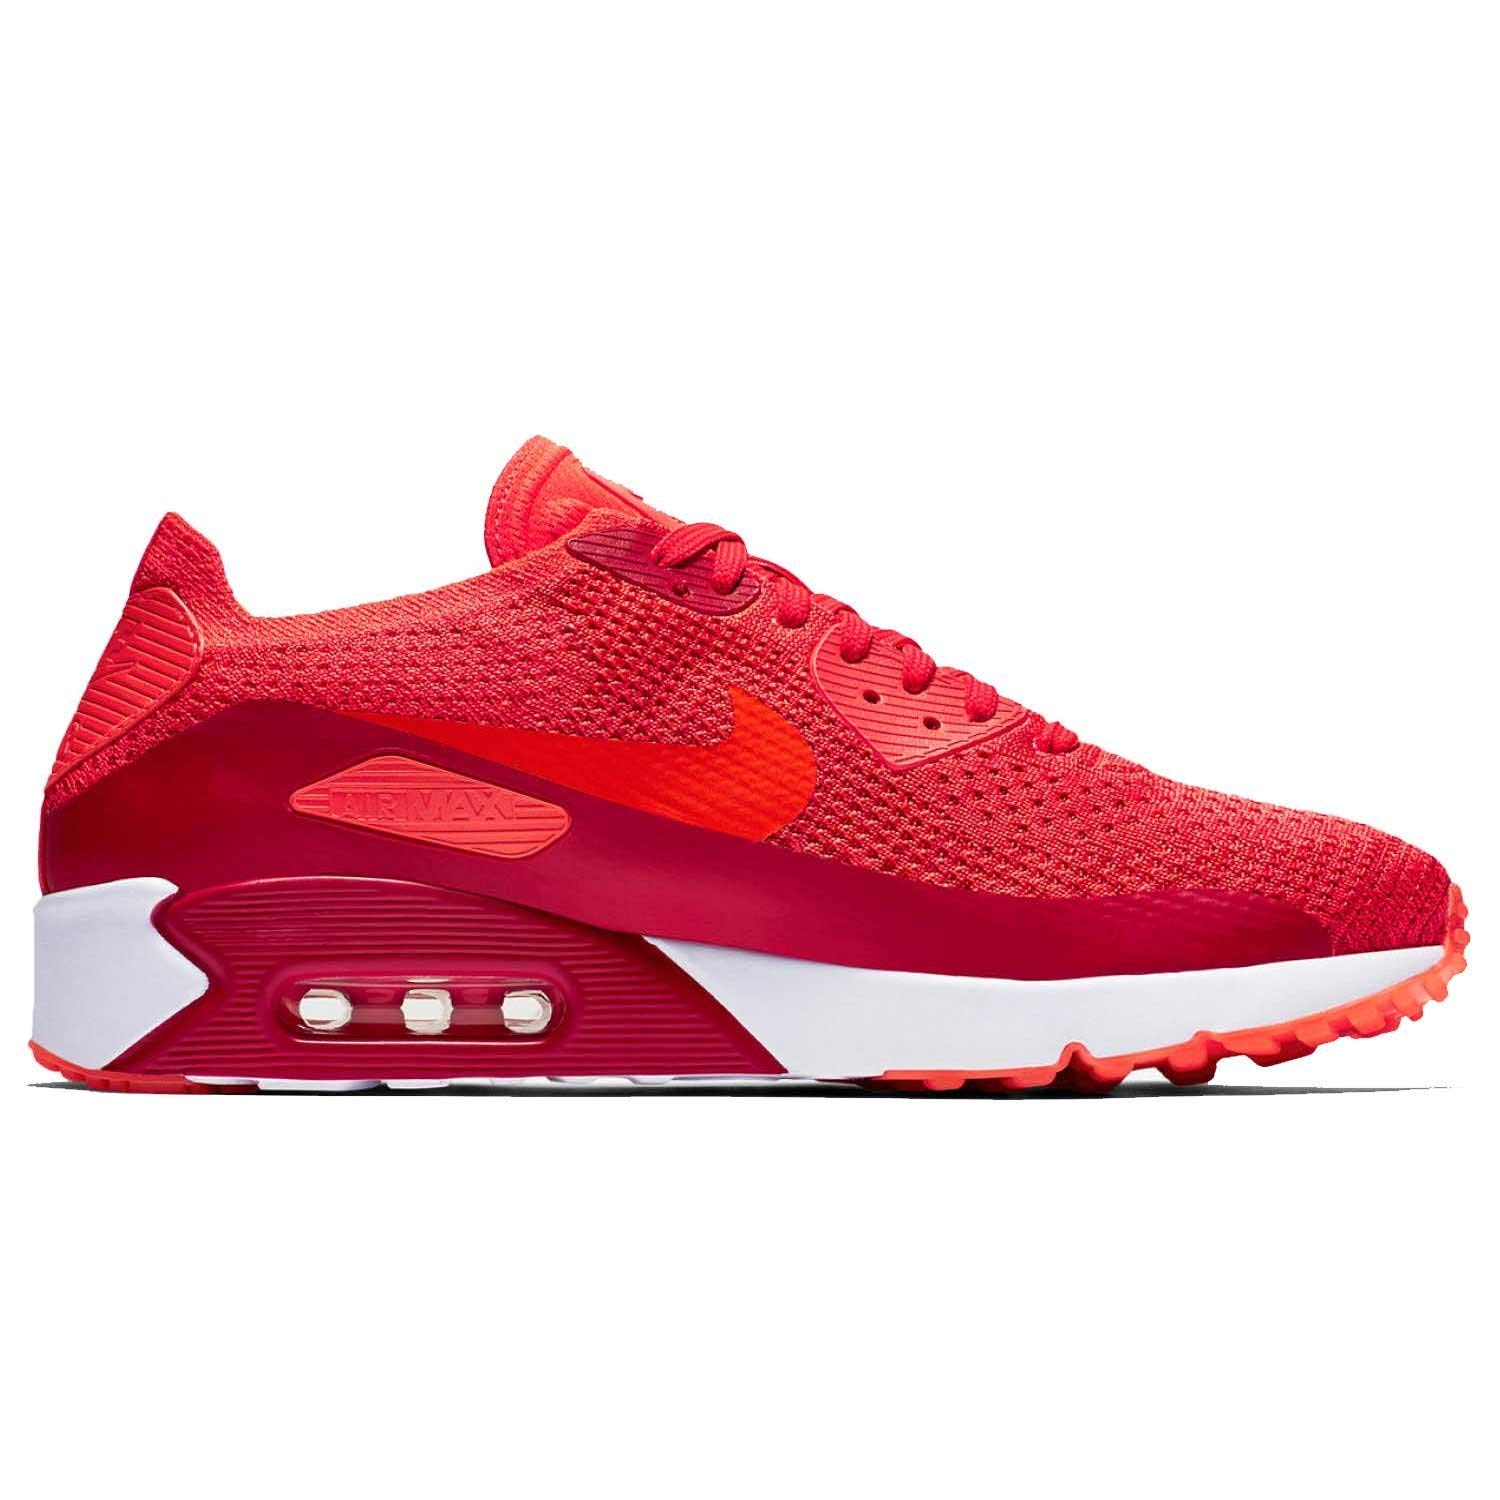 new style b594c cbd12 Nike Women's Air Max 90 Ultra 2.0 Flyknit Orange/White 881109-600 (Size: 9)